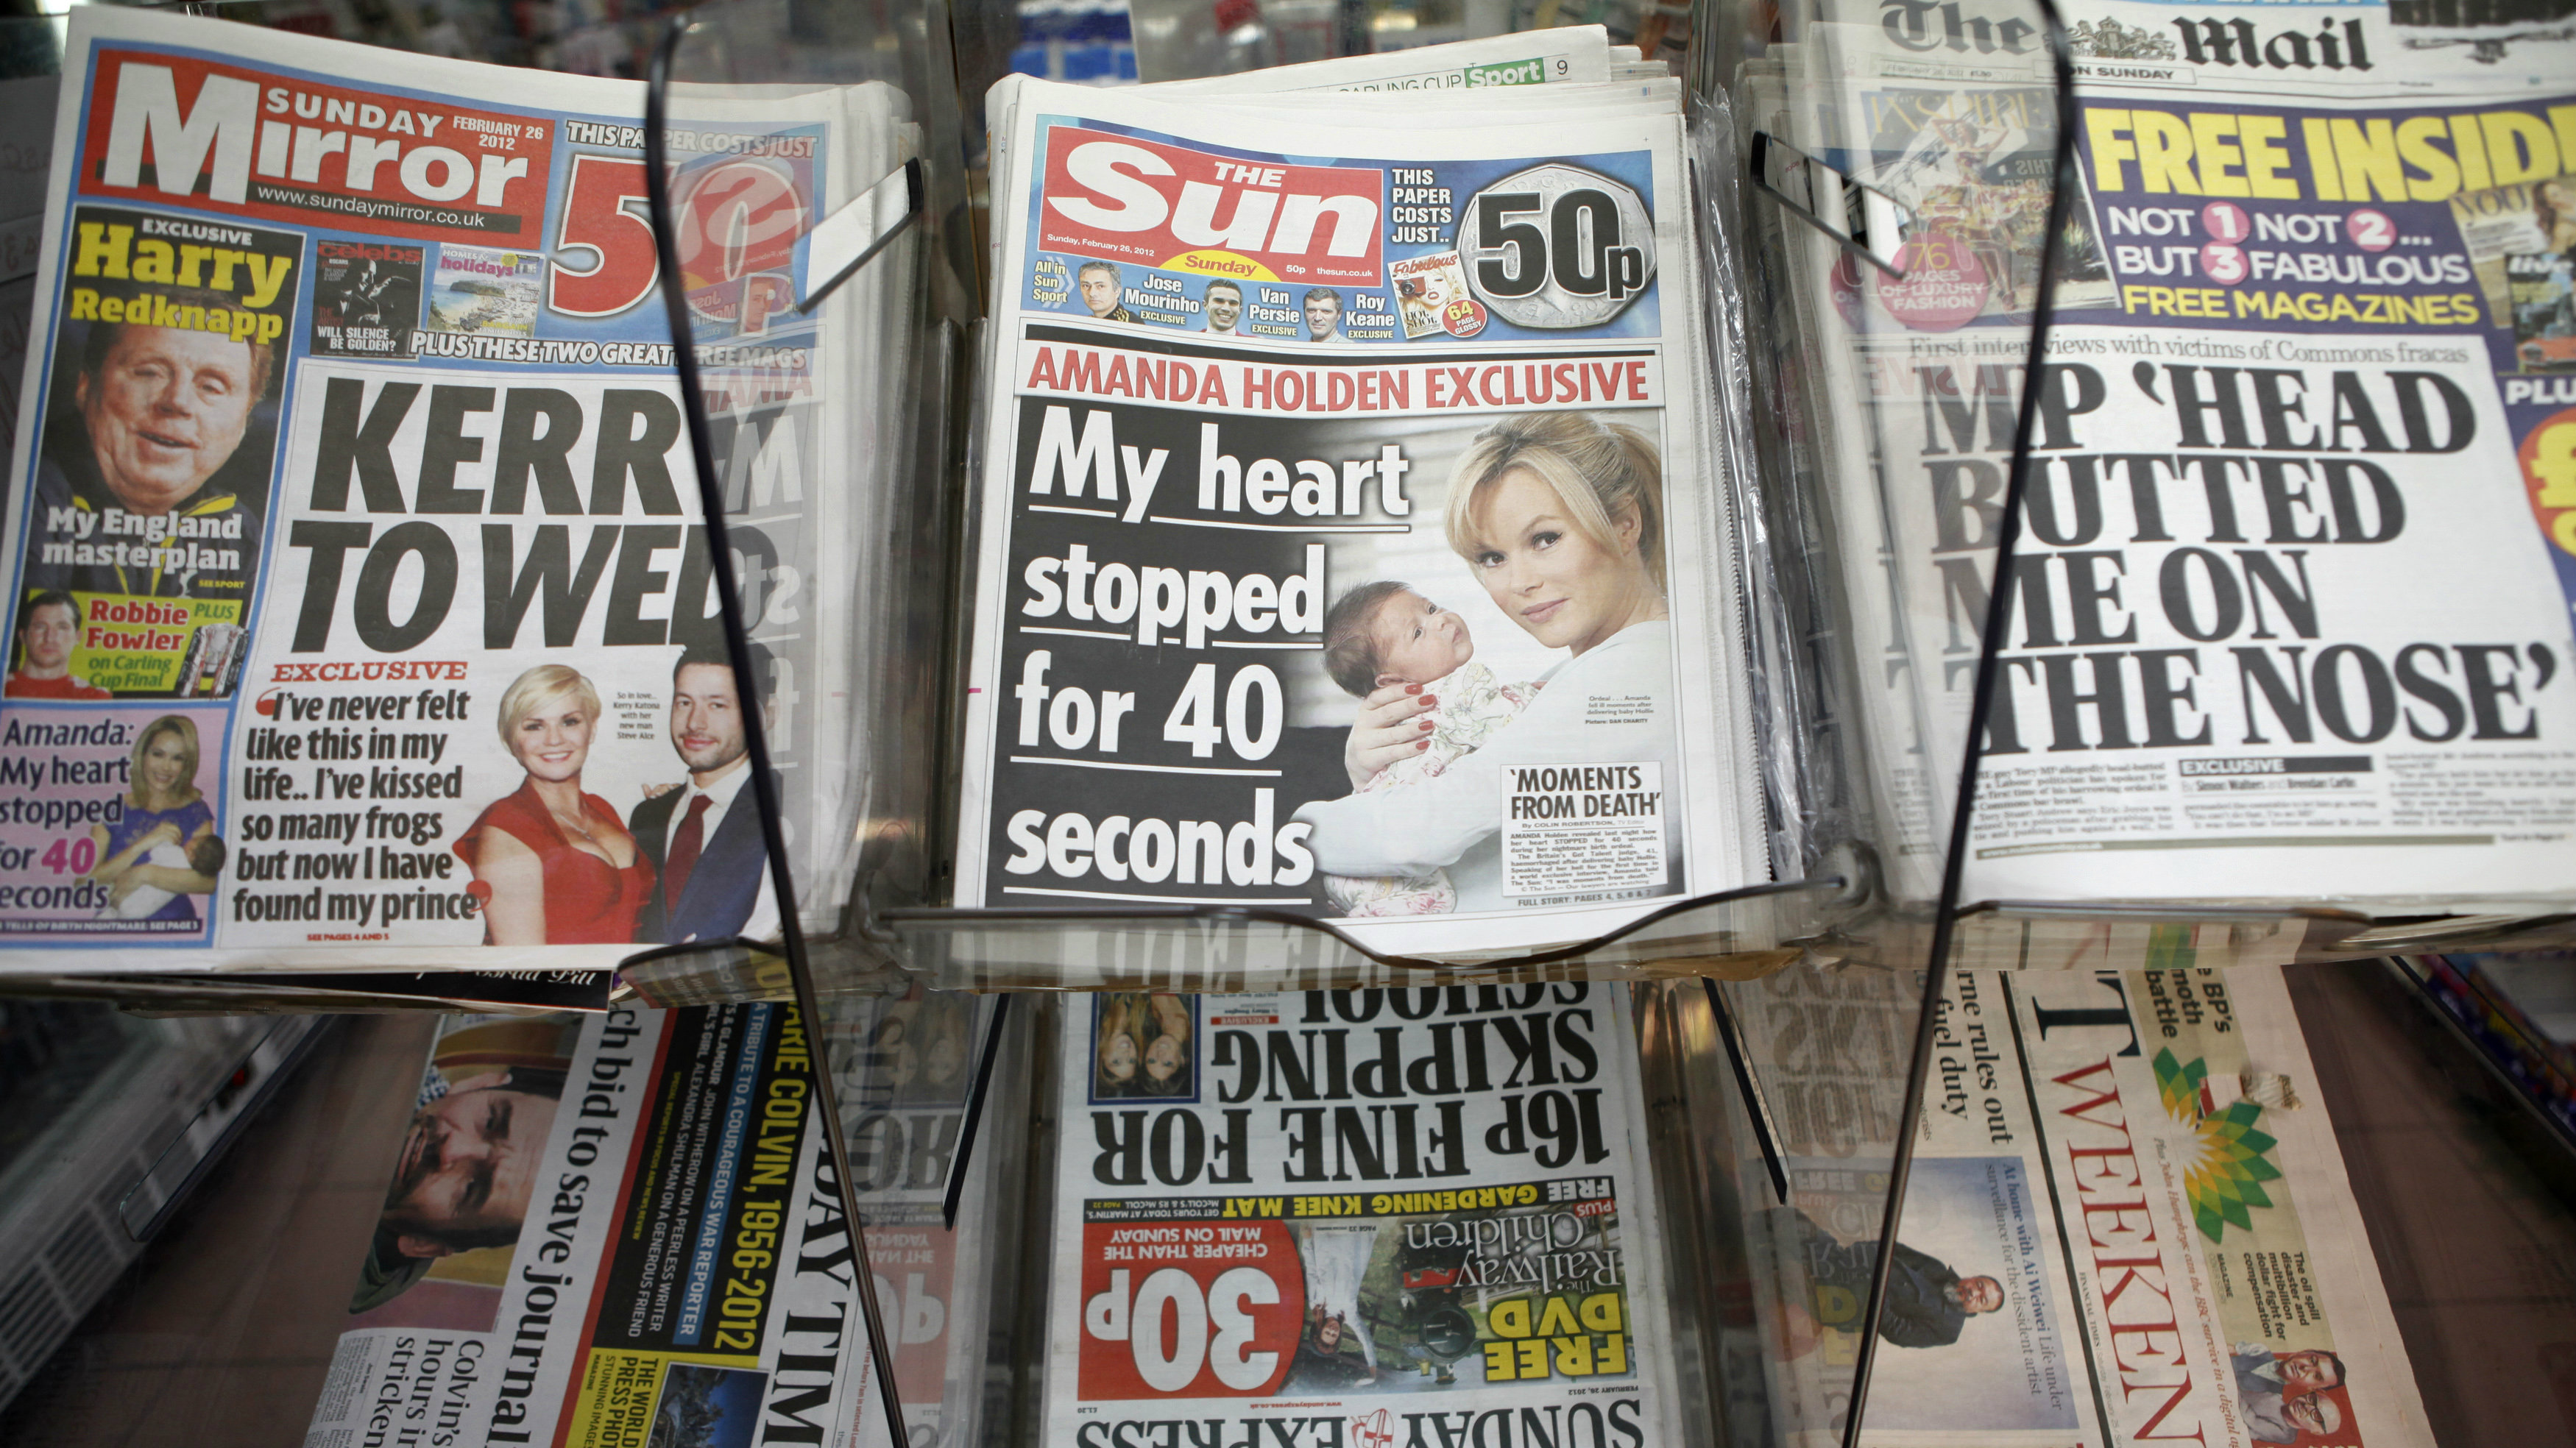 Copies of the Sun on Sunday are displayed for sale, on the first day of publication, in a newsagents in Wembley, north London February 26, 2012. Rupert Murdoch bid to grab back the huge audience his News Corp lost when it closed Britain's best-selling News of the World over a phone-hacking scandal with a new Sunday edition of his Sun tabloid filled with gossip, girls and celebrities. REUTERS/Andrew Winning (BRITAIN - Tags: MEDIA BUSINESS SOCIETY)